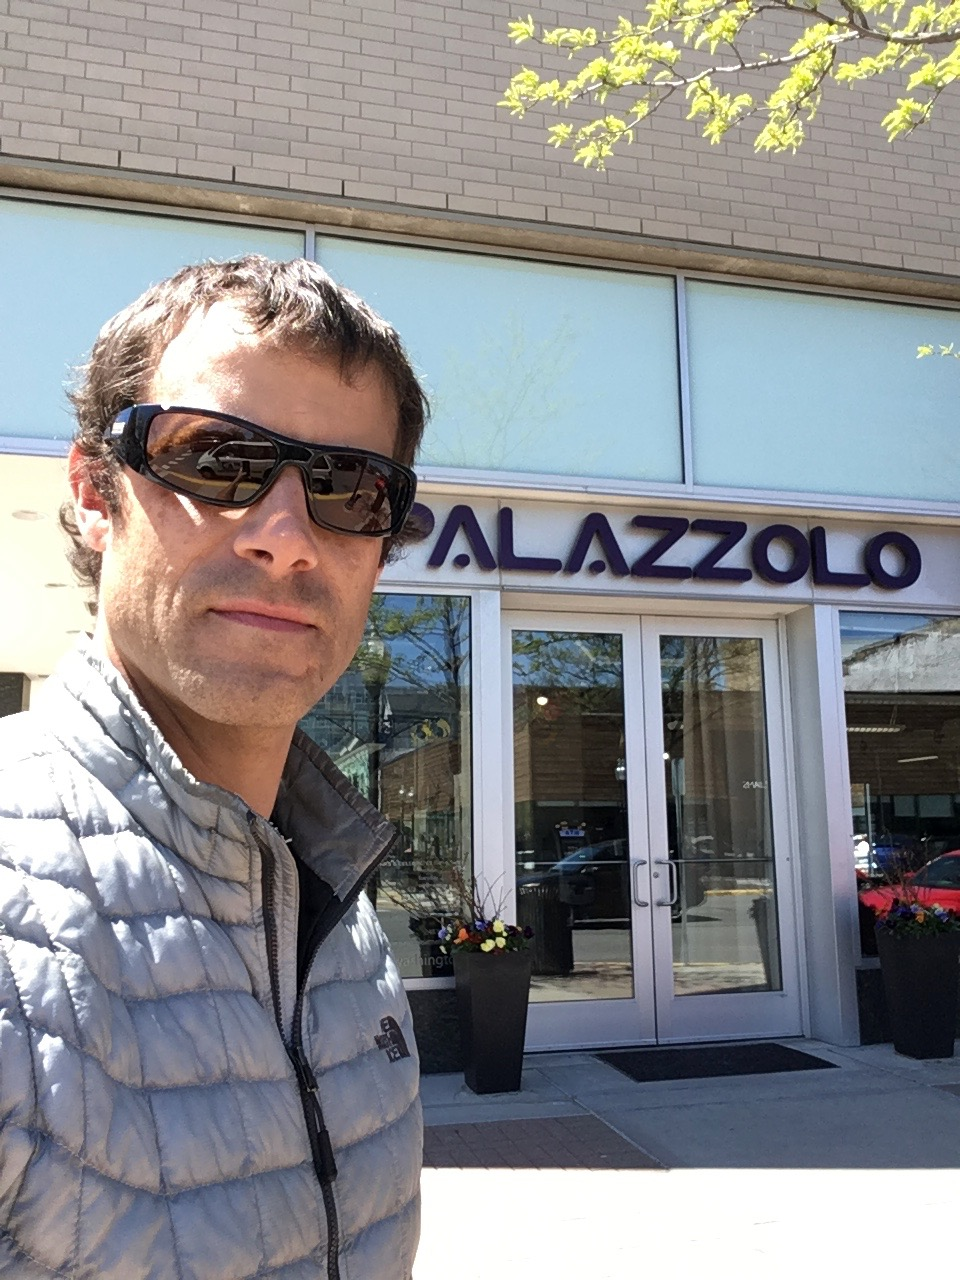 After two decades at this great downtown Royal Oak location, Jimi had to shutter Palazzolo salon in the Spring of 2018.